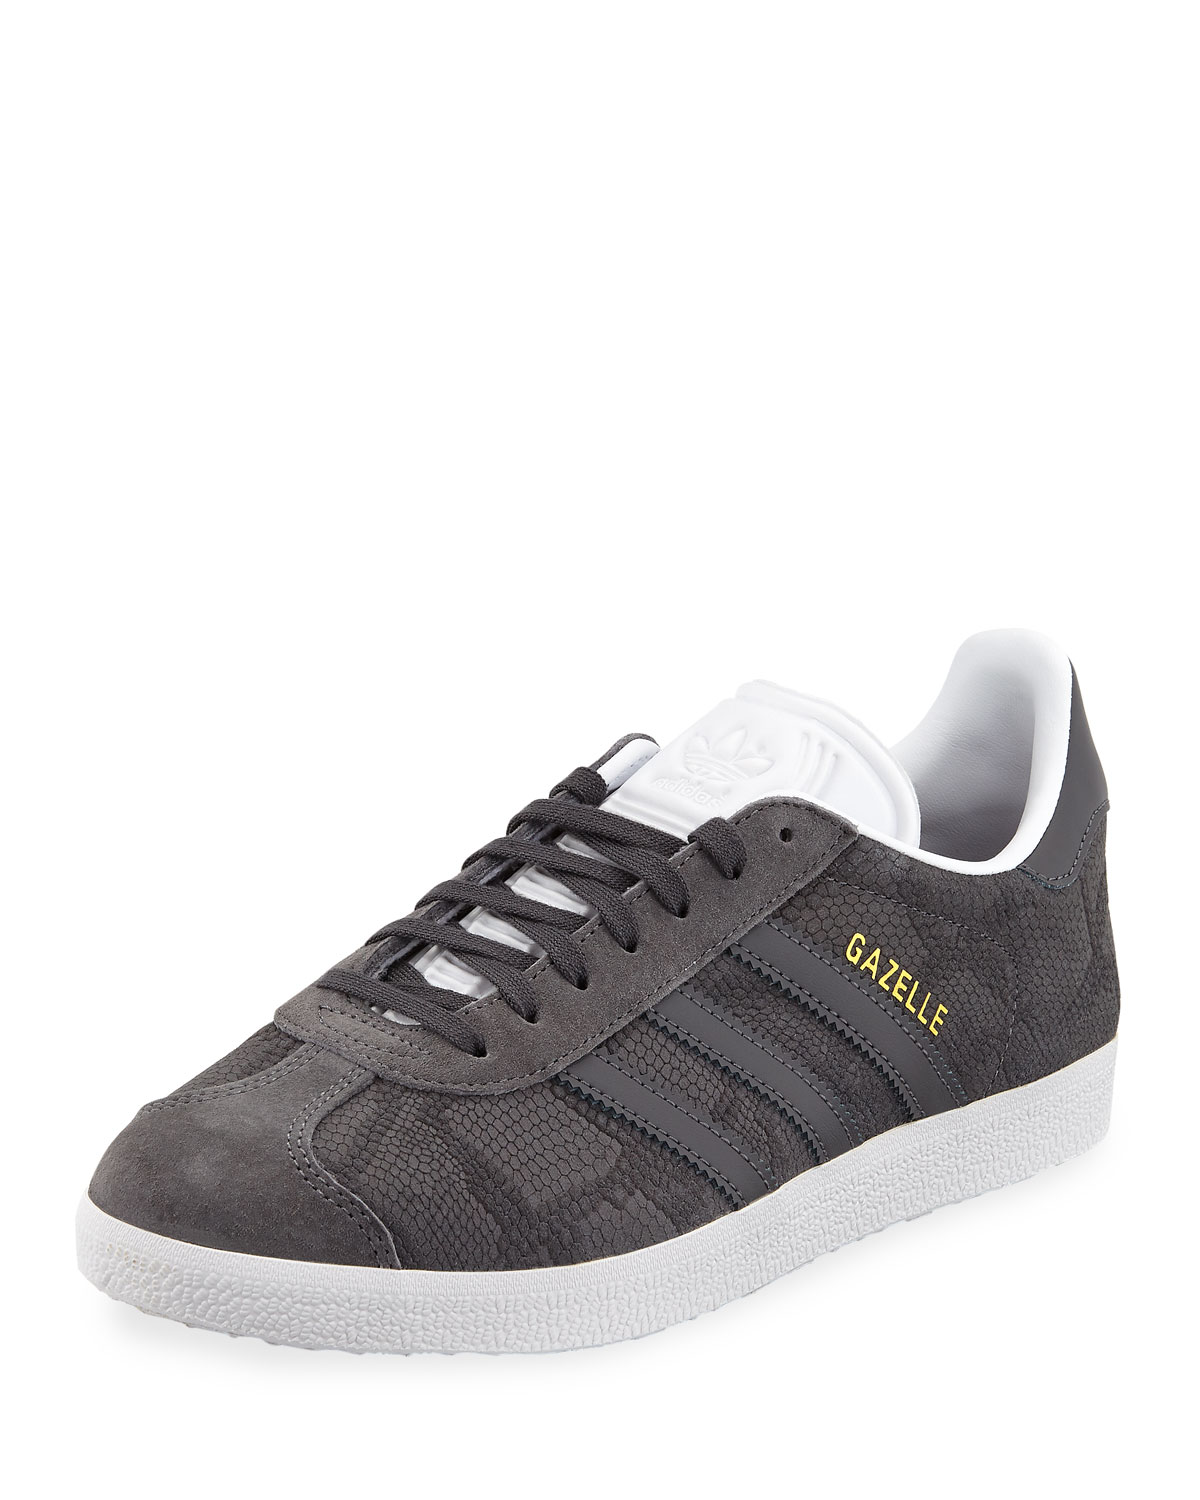 3404a4109d73 Adidas Gazelle Leather Lace-Up Sneakers